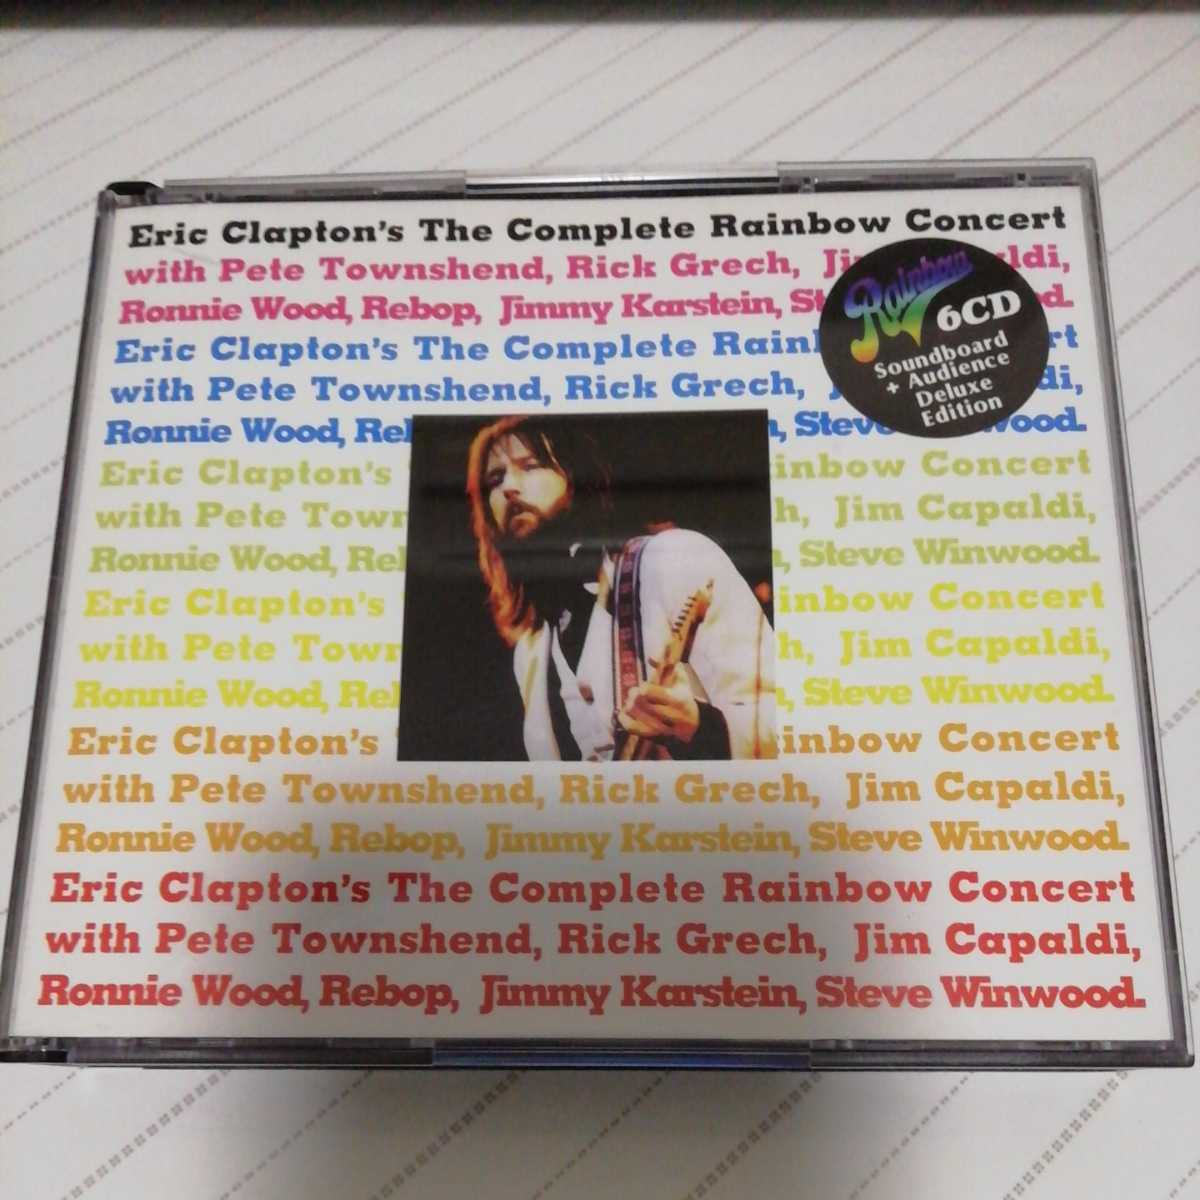 THE COMPLETE RAINBOW CONCERT(6CD) DELUXE EDITION ERIC CLAPTON エリック・クラプトン